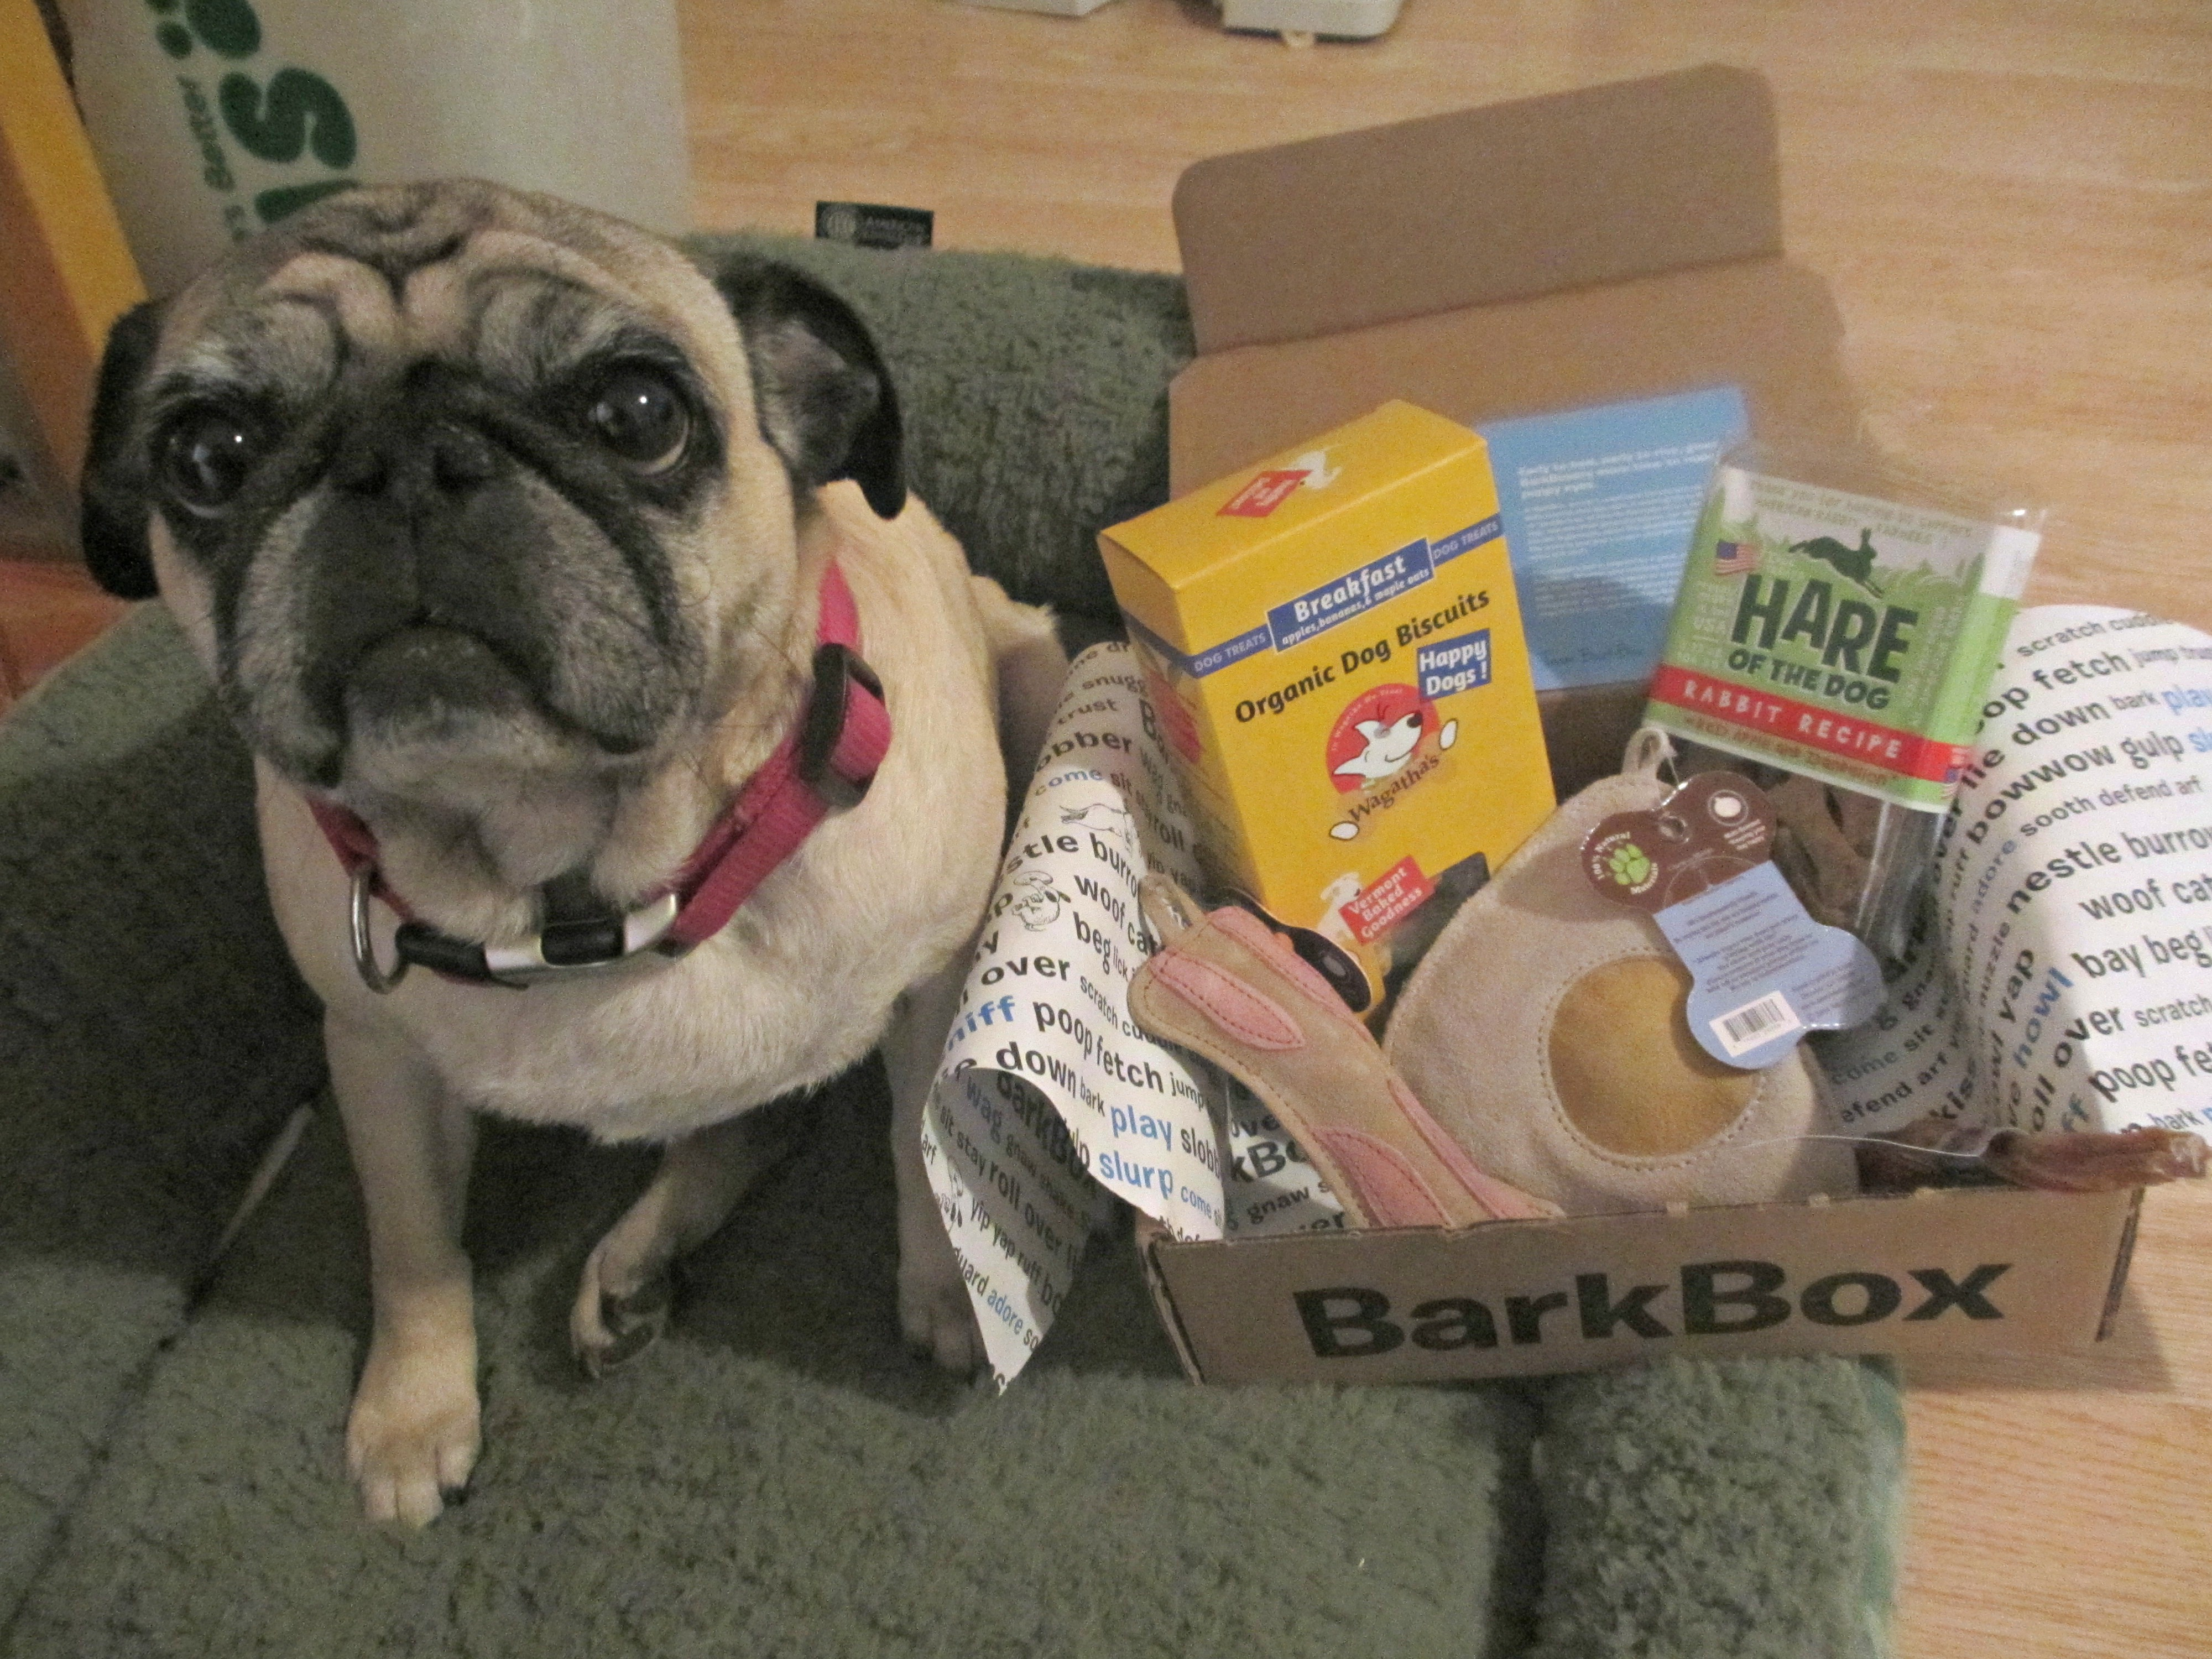 barkboxmarchbeans & Barkbox Monthly Subscription Box For Dogs Review Aboutintivar.Com